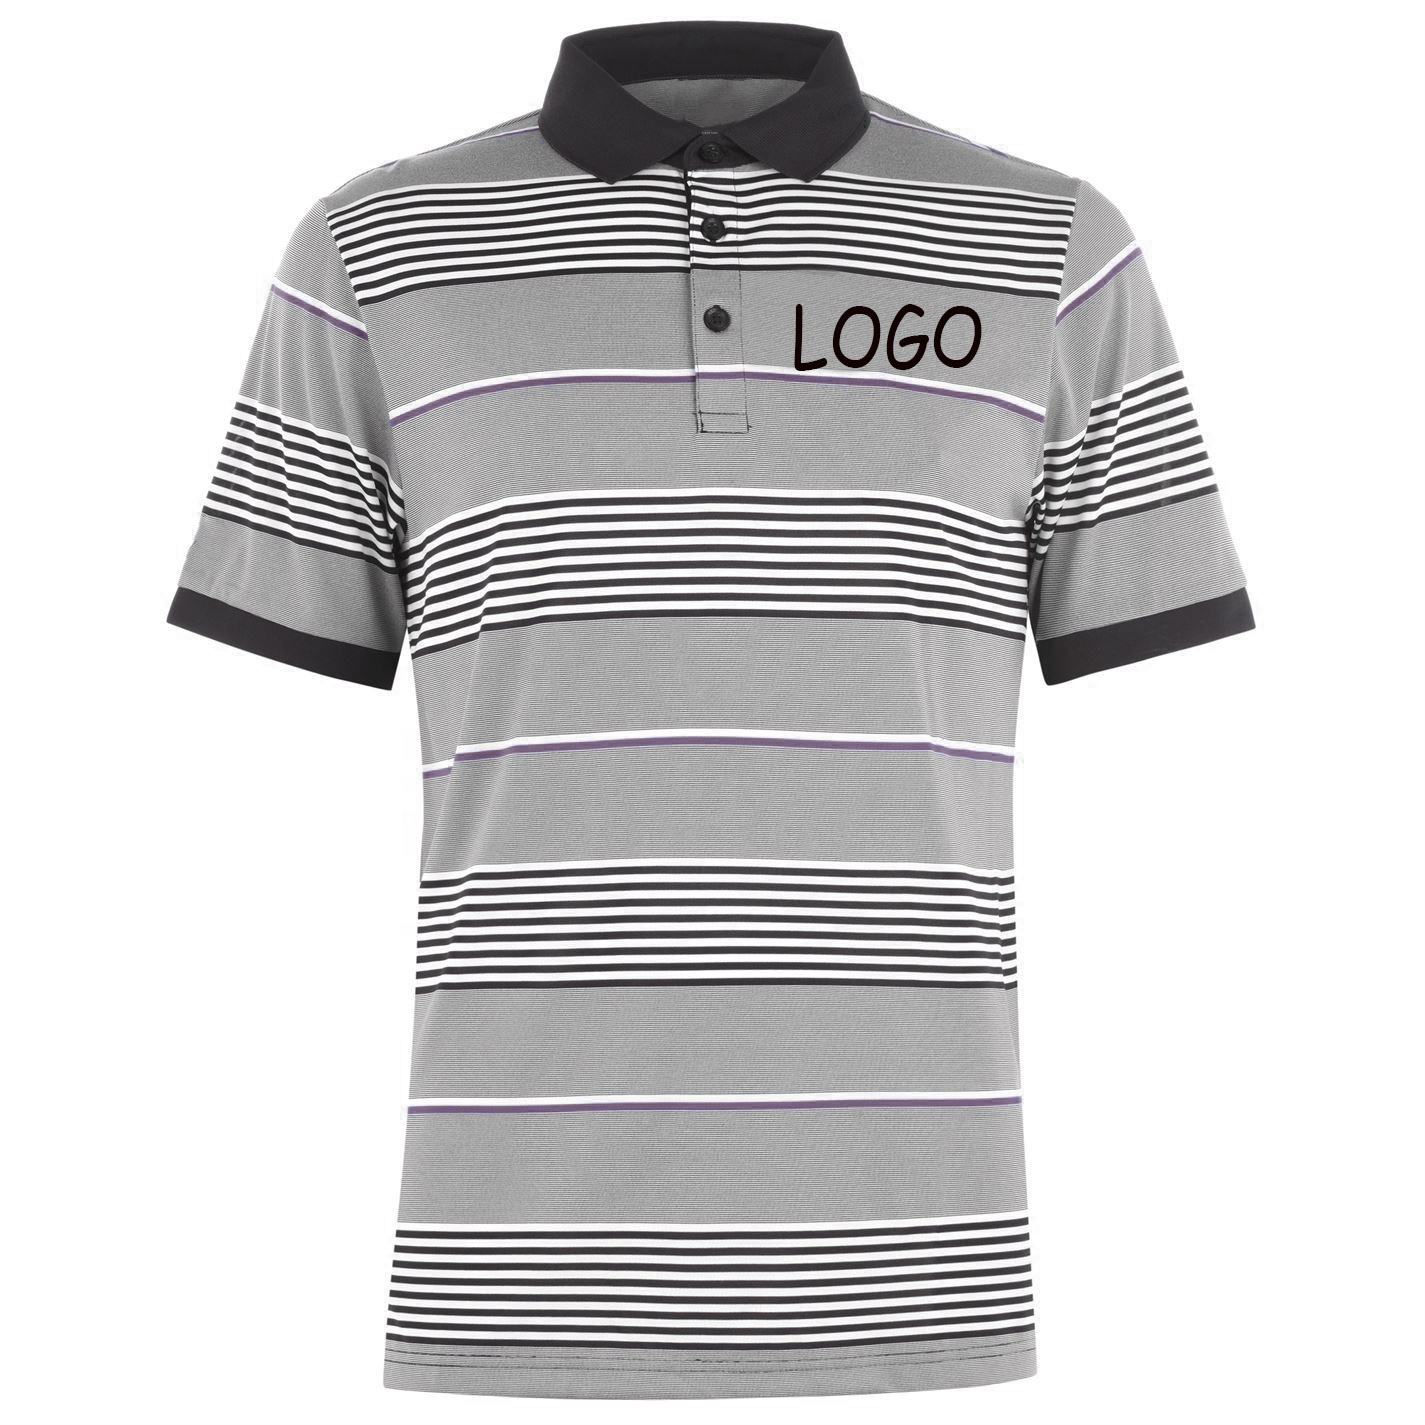 Design Your Own Polo Shirt Printing On T Shirt - Buy T Shirt Making,Shirt Design Ideas,T Shirt Companies Near Me Product on Alibaba.com